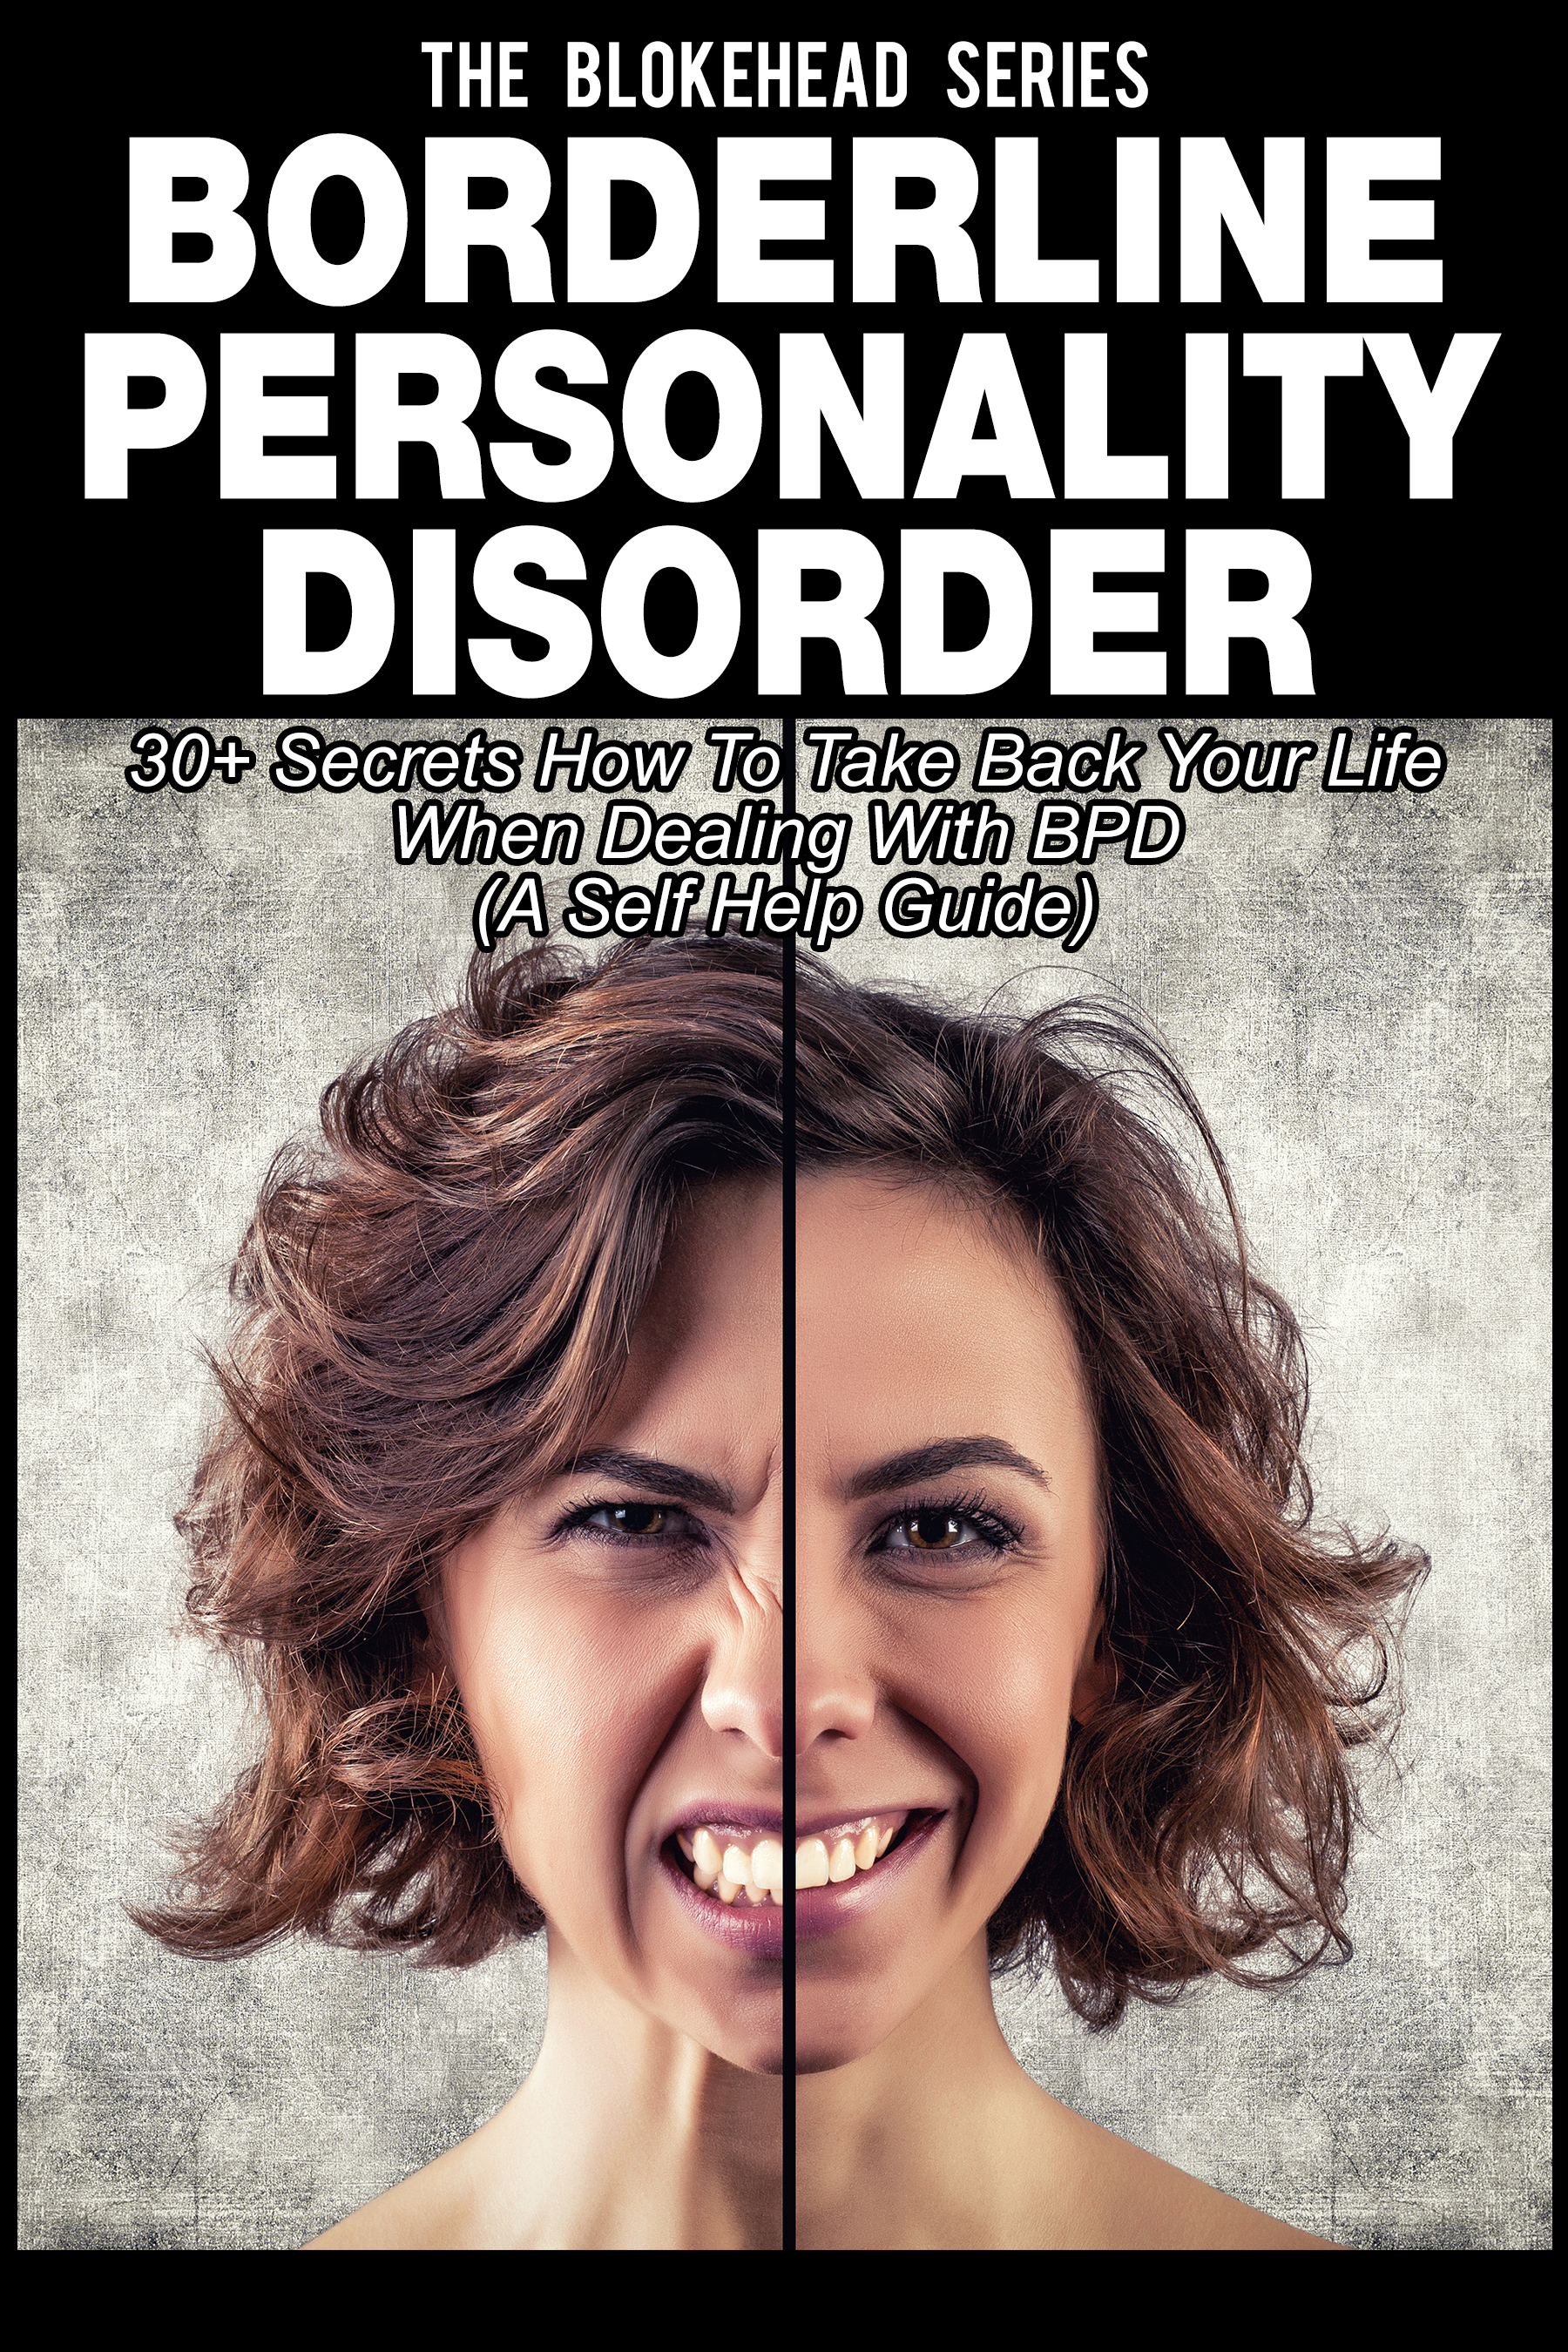 Borderline personality disorder : 30+ secrets how to take back your life with bpd